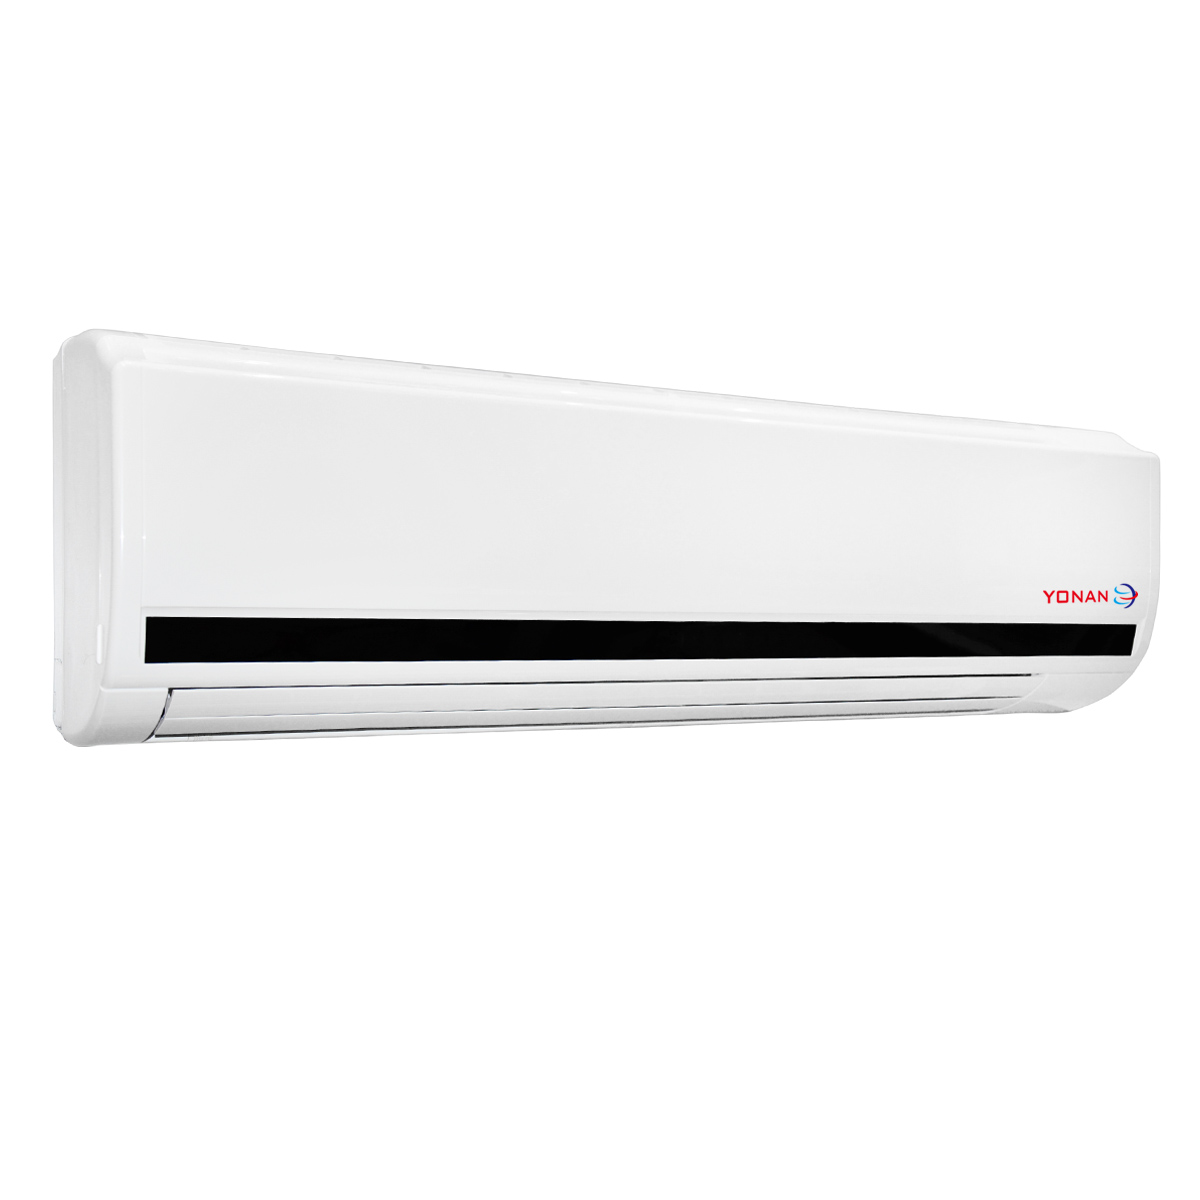 Air Conditioners New And Demo Available Direct From Importer Sold Directly To U